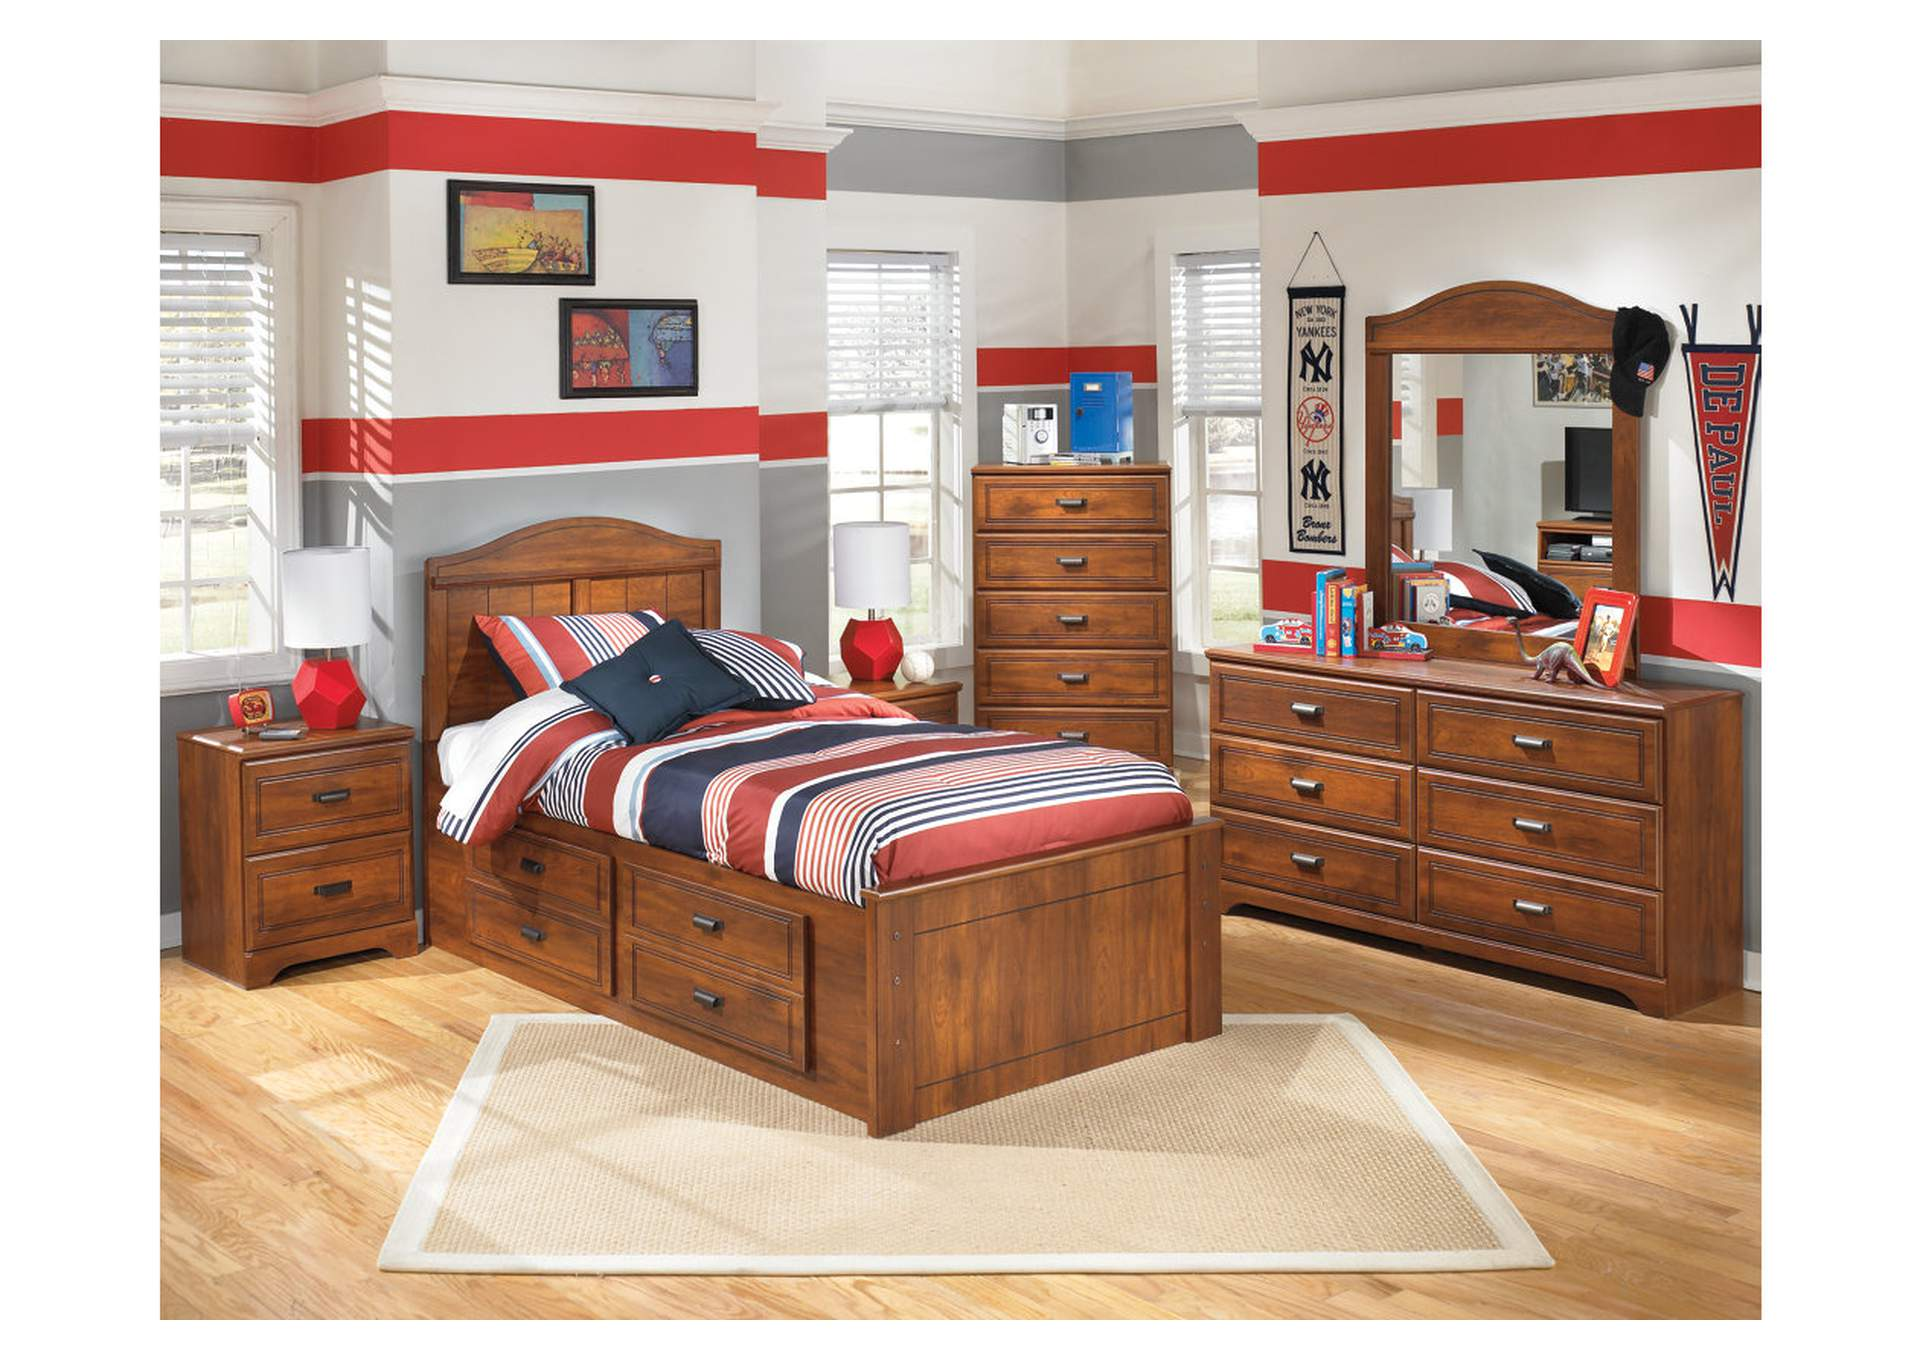 Barchan Twin Panel Bed w/ Storage, Dresser & Mirror,Signature Design By Ashley